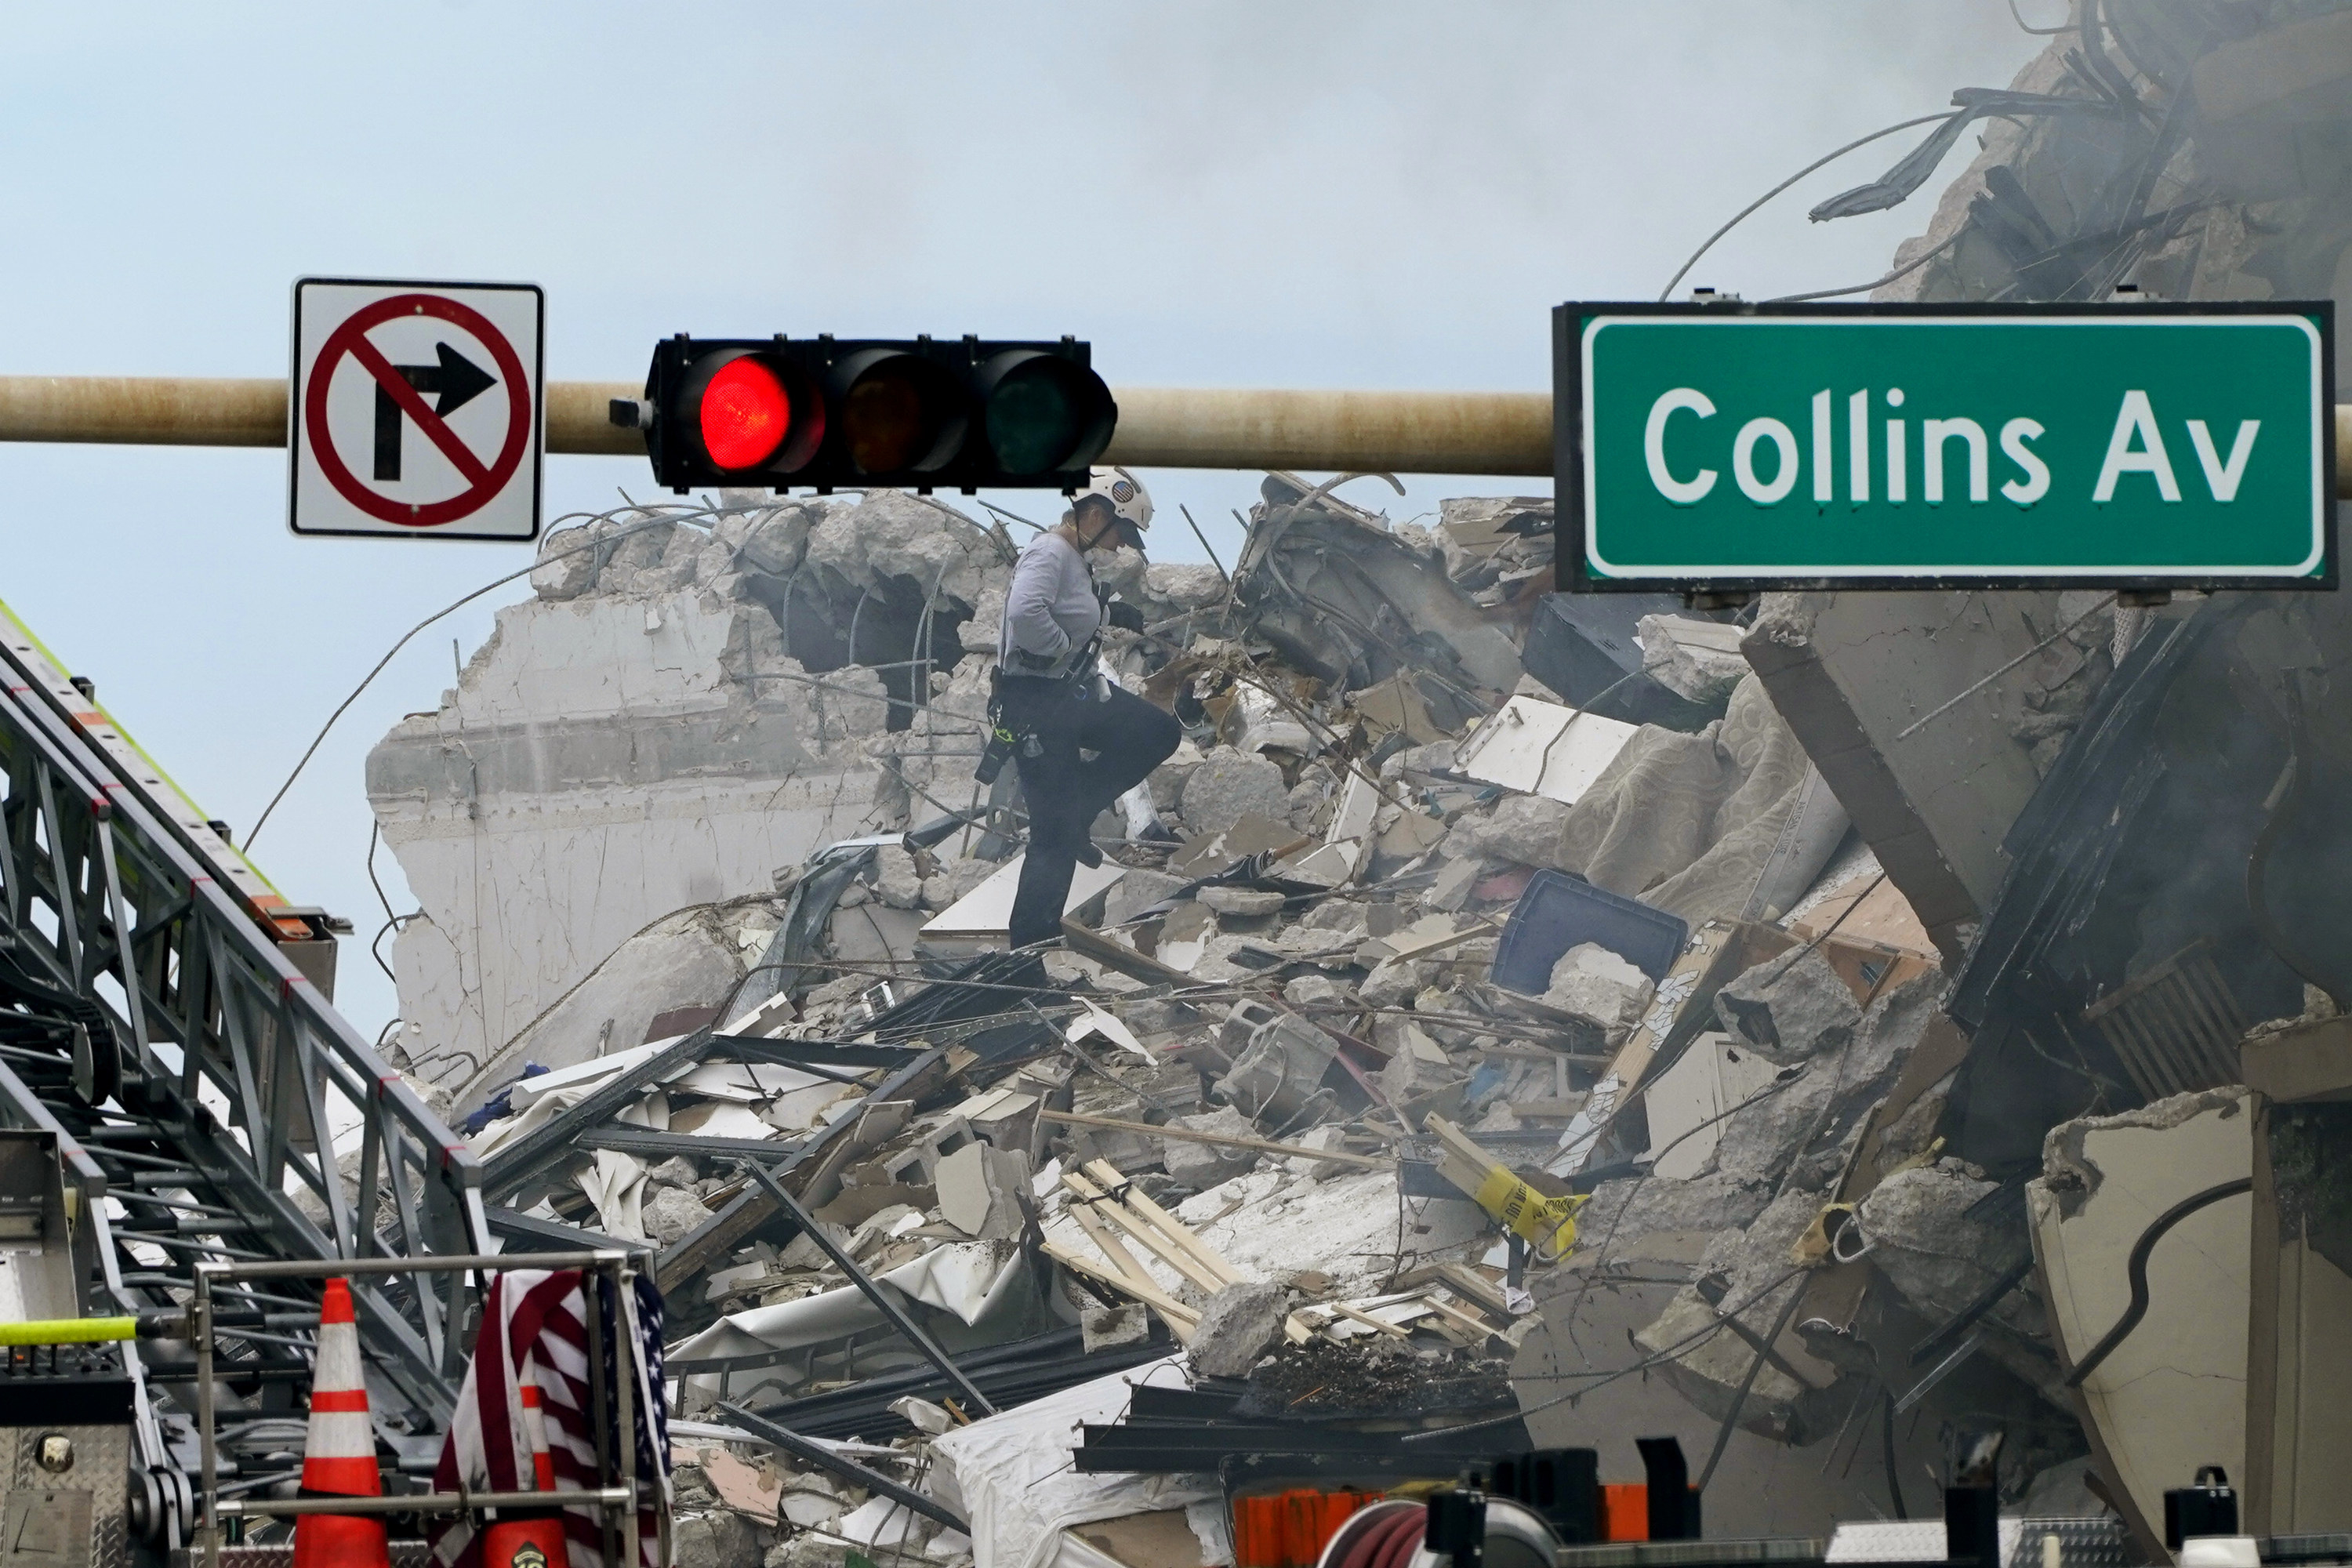 A rescue worker walks on the rubble of a partially collapsed building, with a Collins Ave sign and stoplight in the foreground